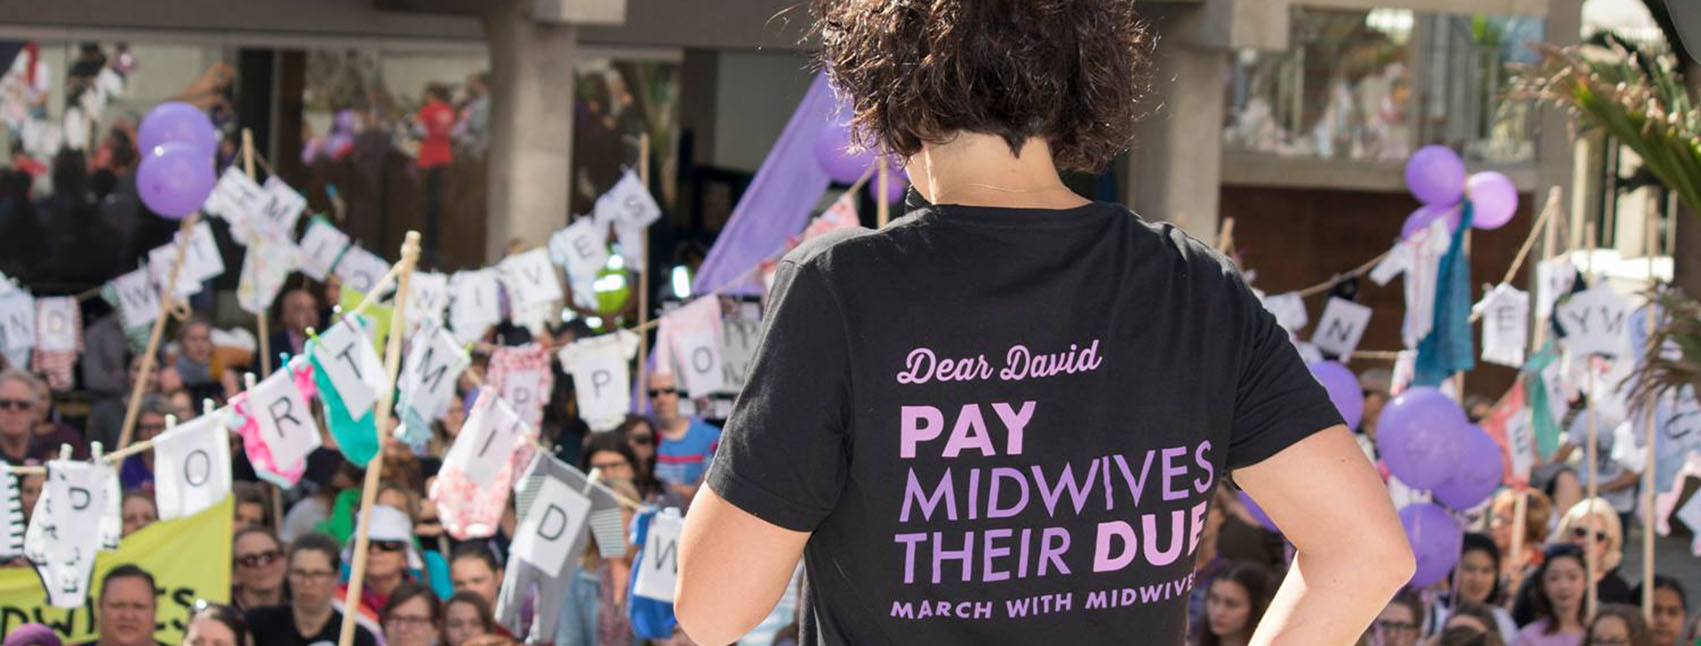 March for Midwives